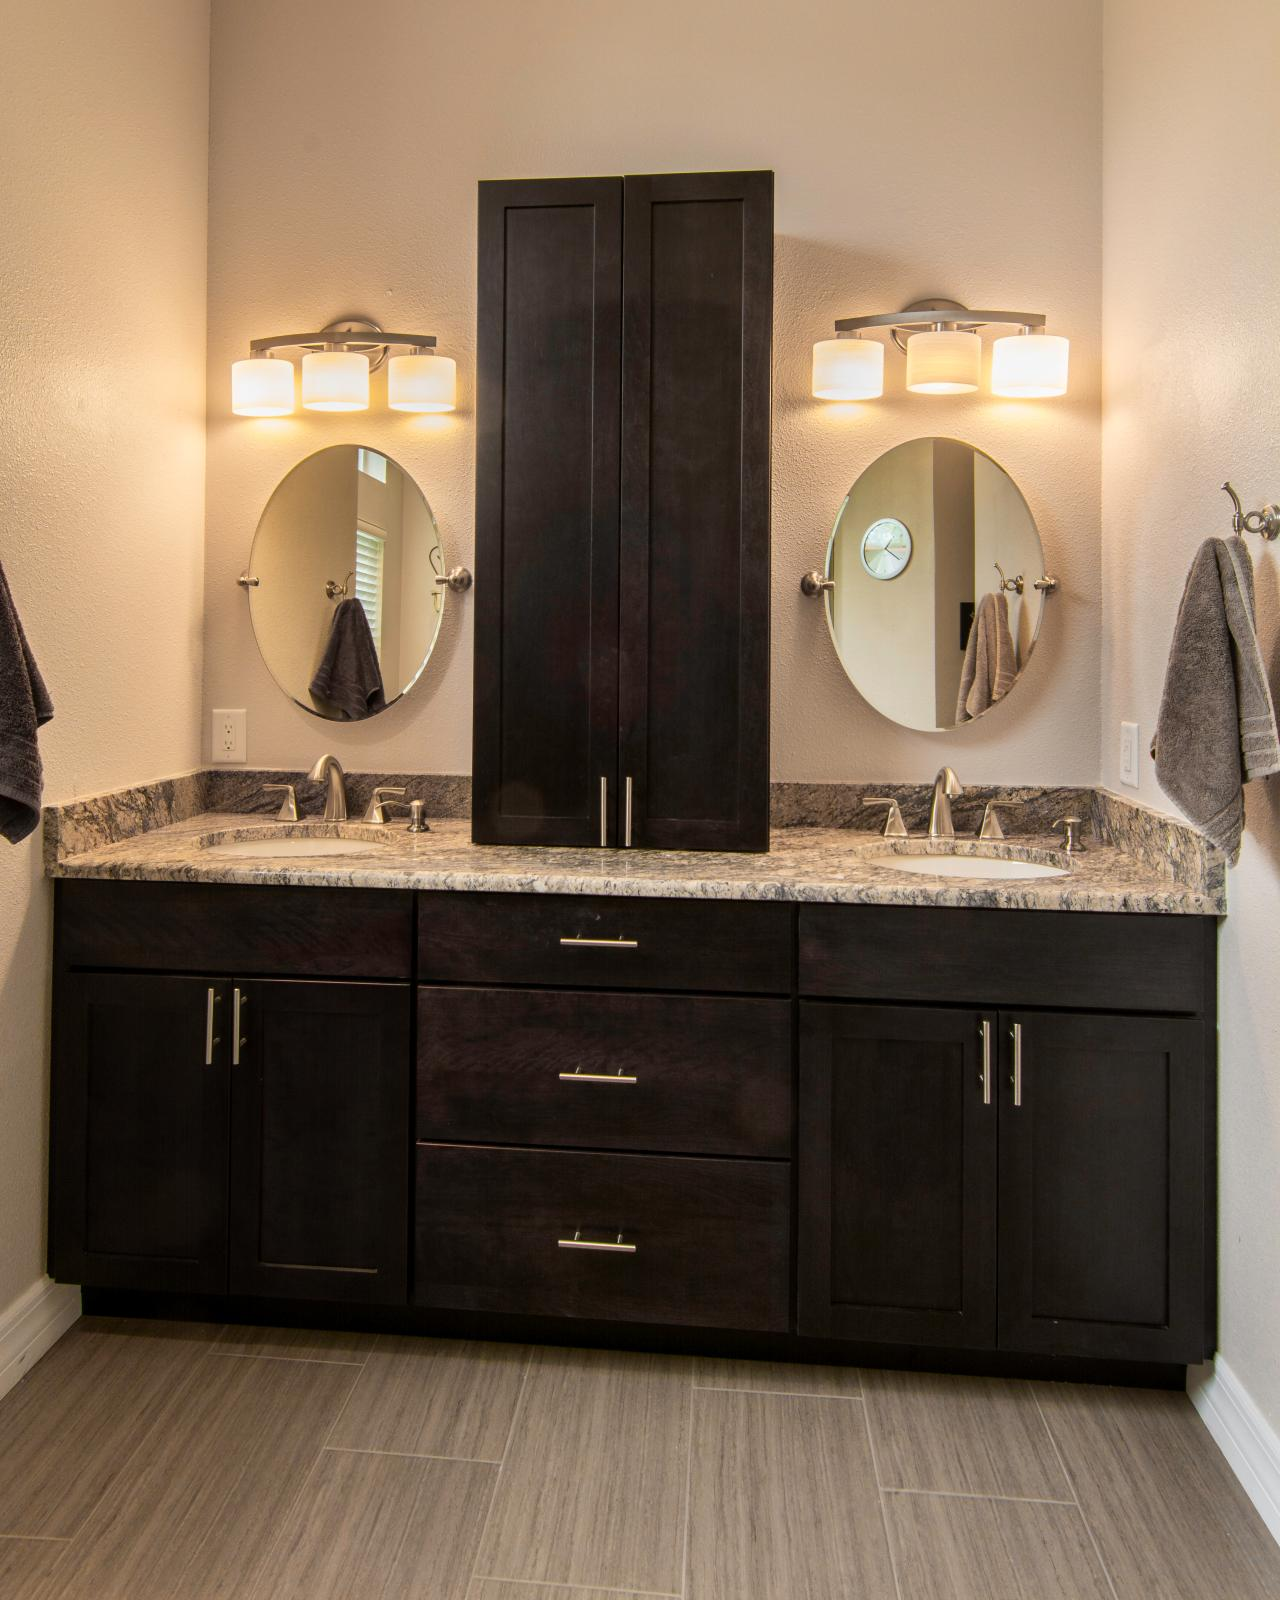 Double vanity bathroom photos hgtv Double vanity ideas bathroom